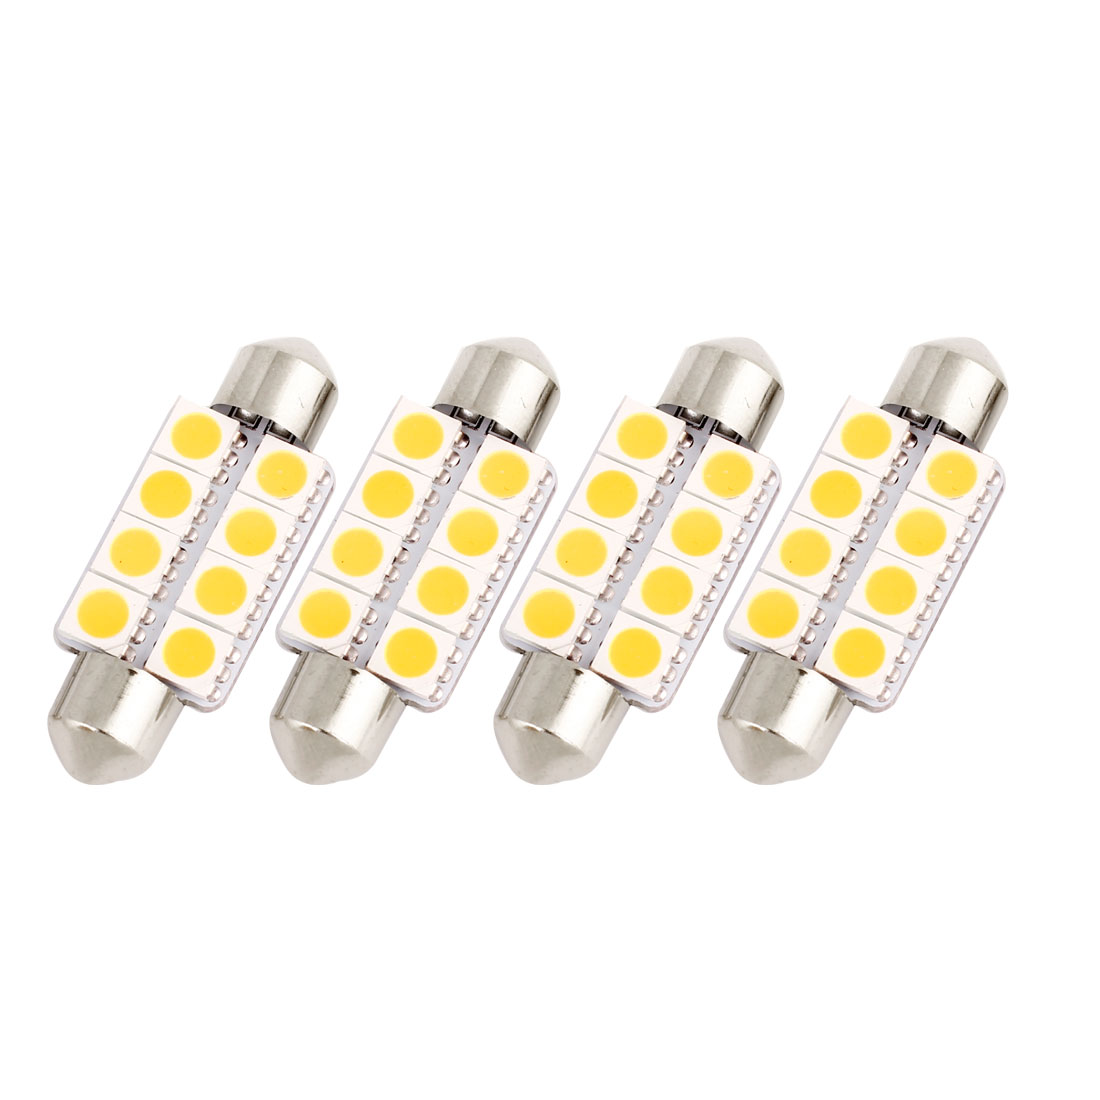 "4Pcs 39mm 1.54"" 5050 SMD 8-LED Warm White Festoon Dome Light Bulb DE3425 DE3423 Internal"